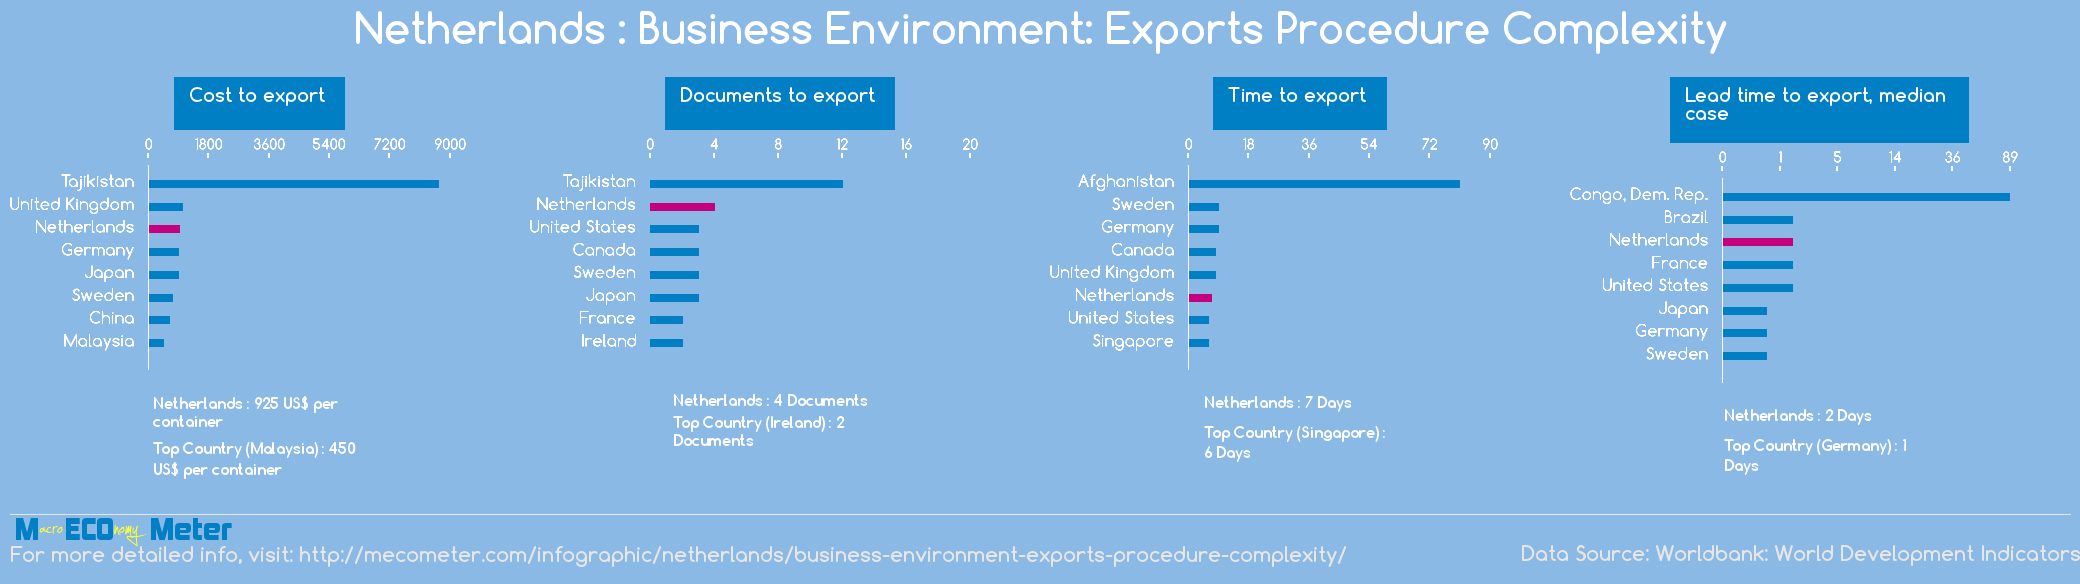 Netherlands : Business Environment: Exports Procedure Complexity